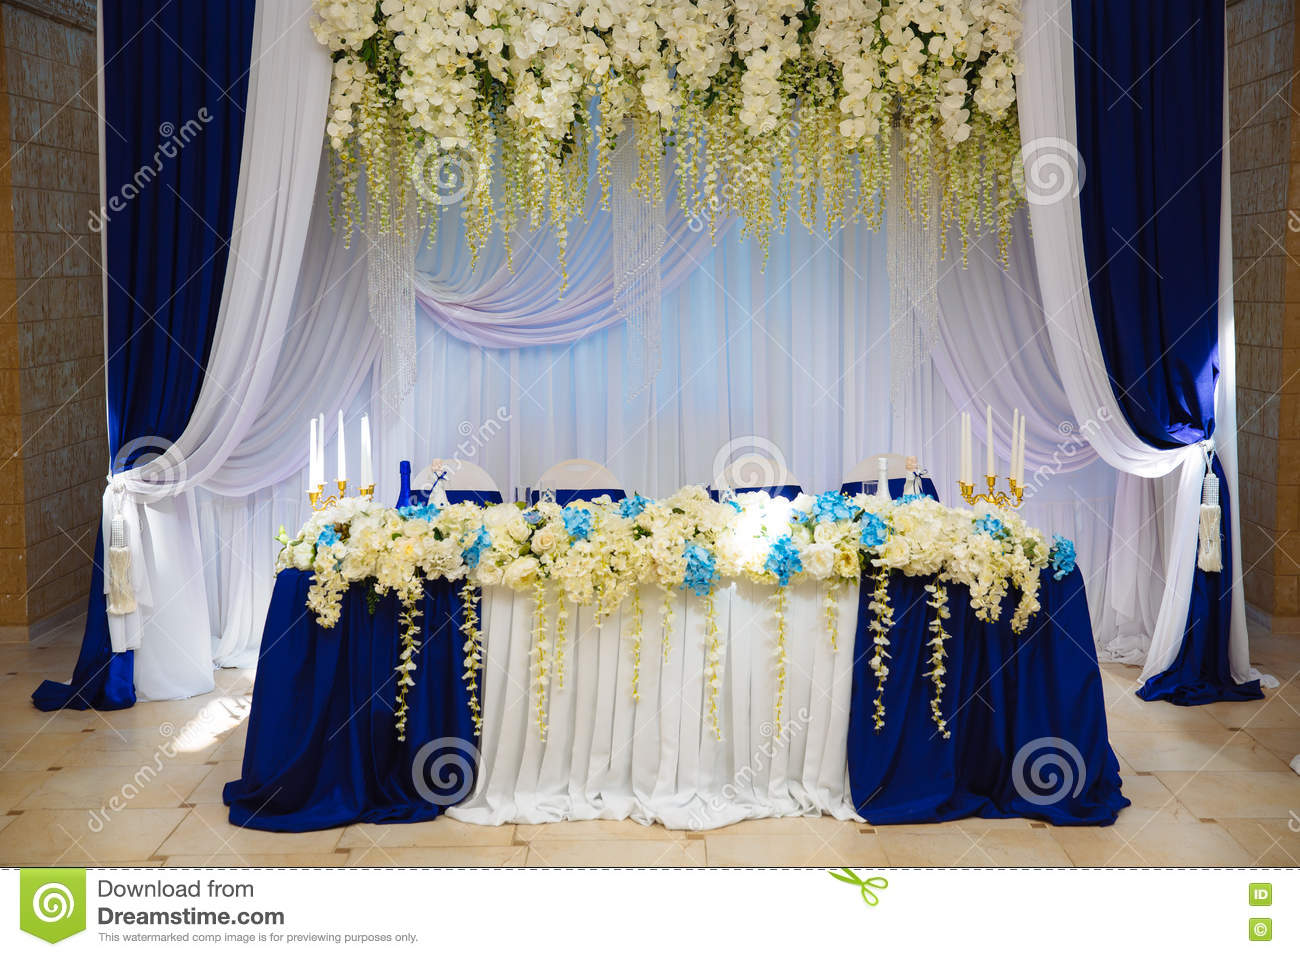 Wedding accessories the decoration of the banquet hall table download comp junglespirit Images